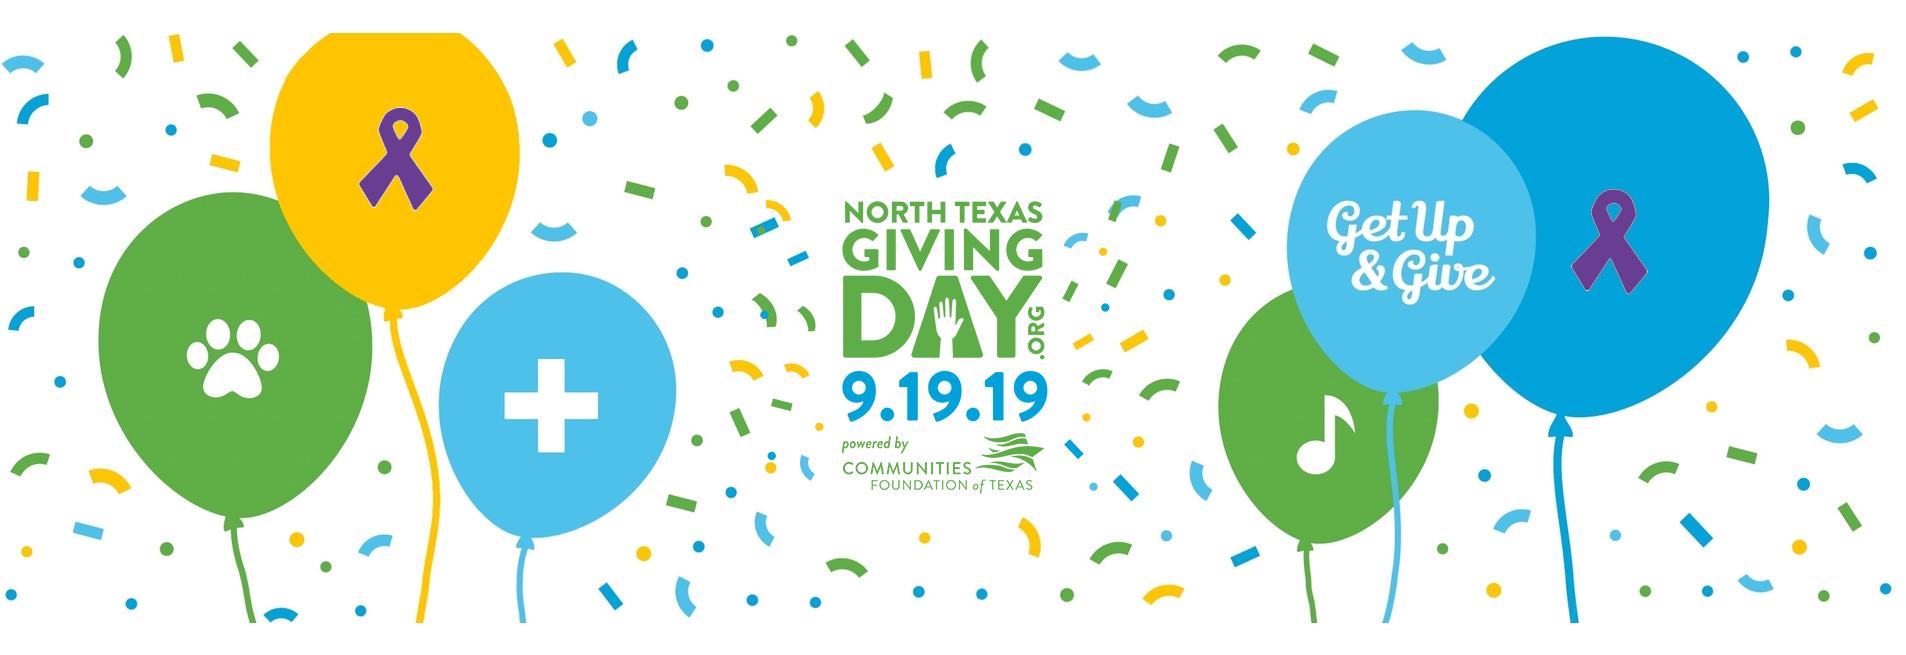 Get Up & Give on North Texas Giving Day - Sept 20, 2018